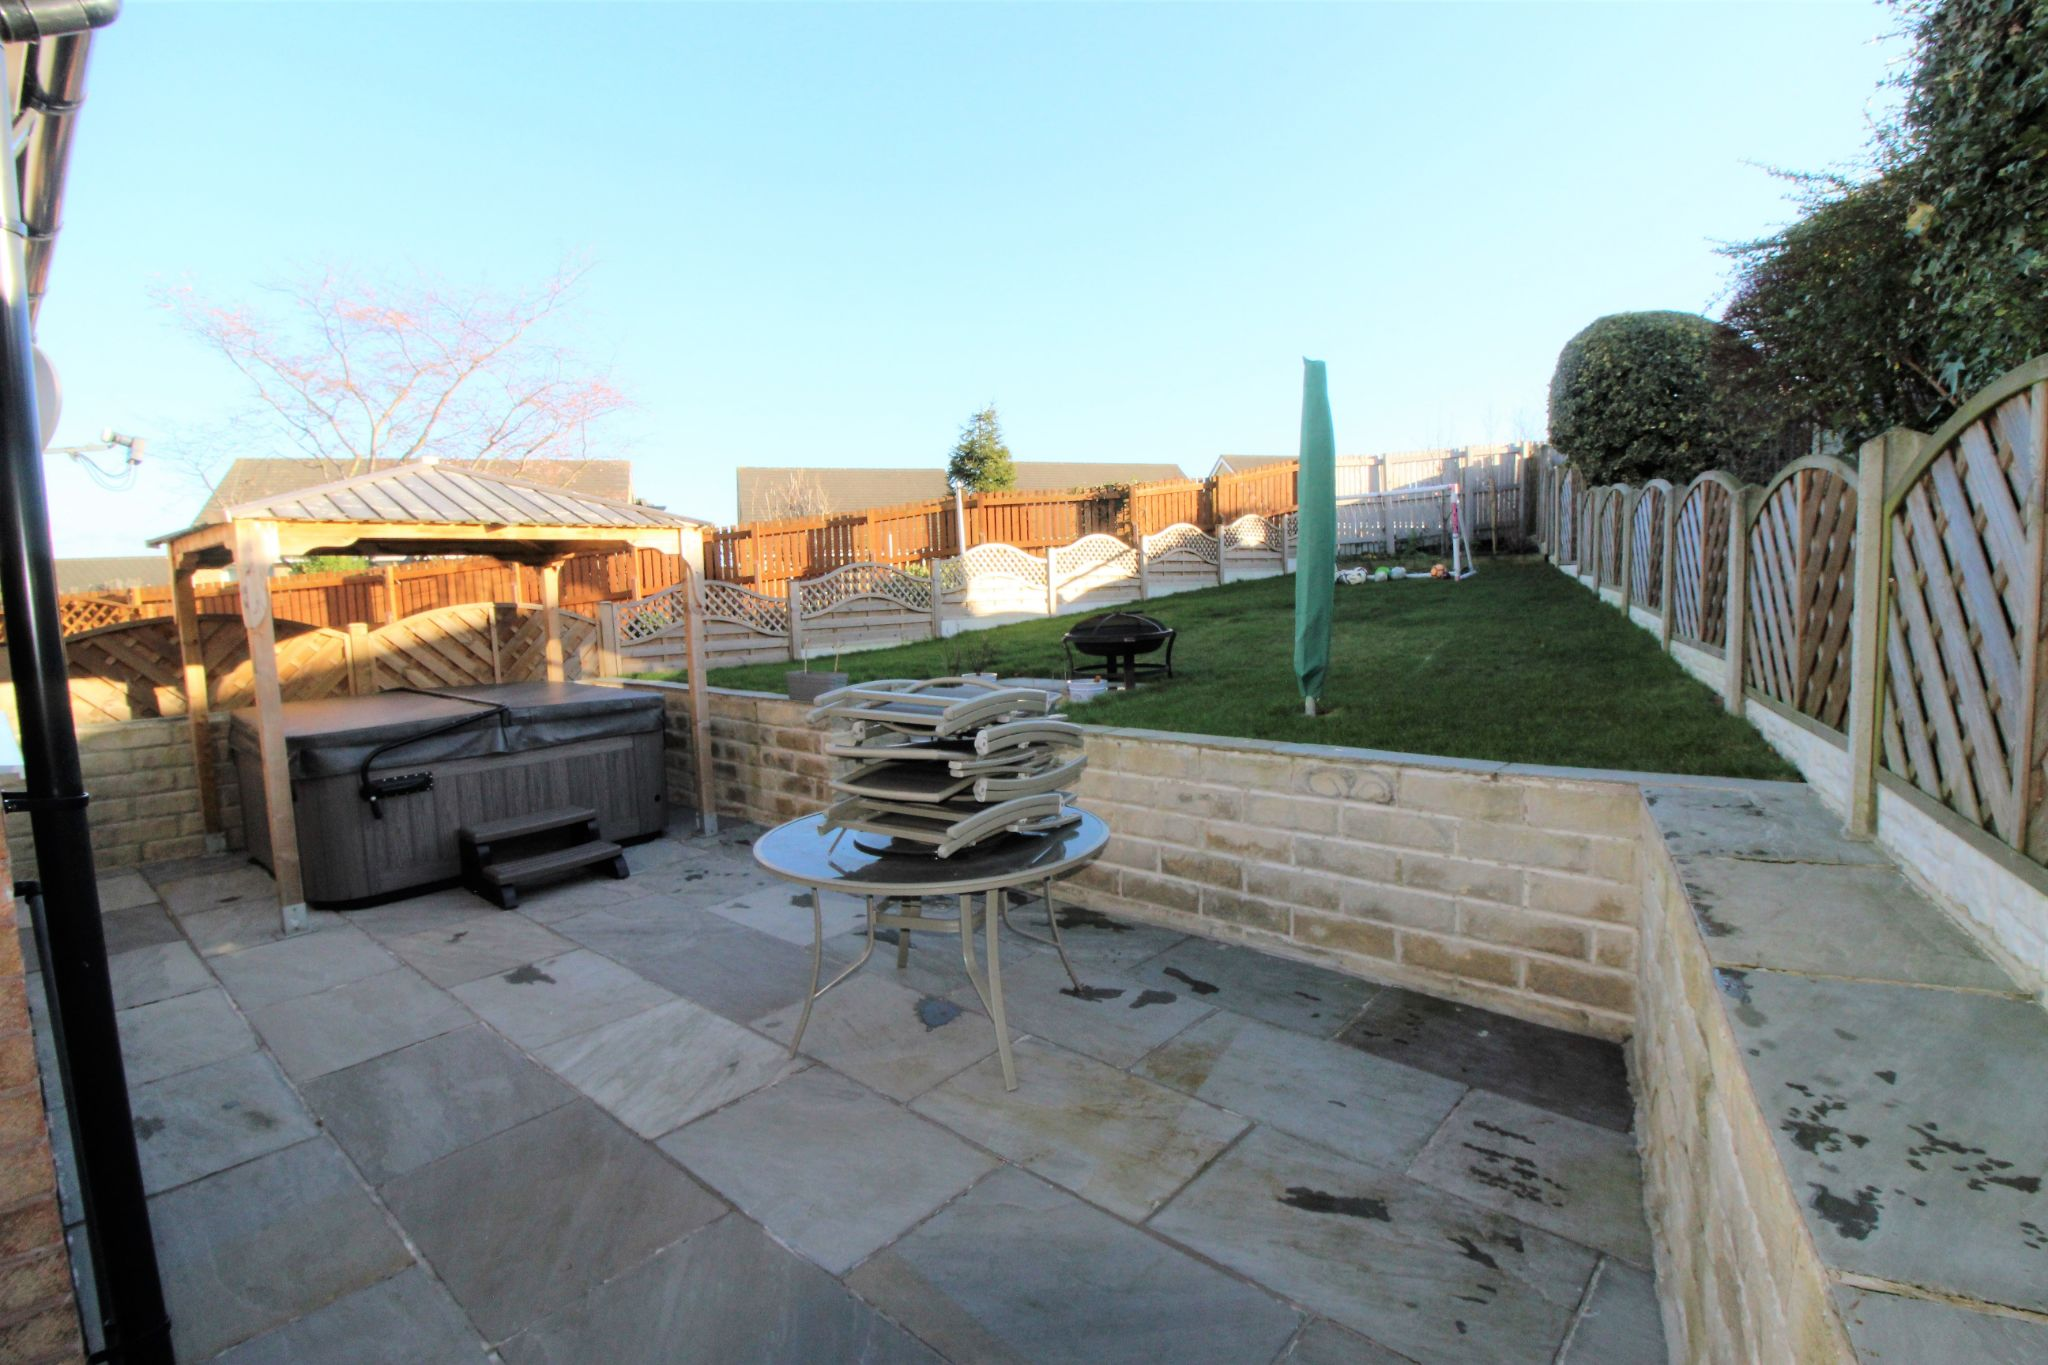 4 bedroom semi-detached bungalow SSTC in Brighouse - Rear patio